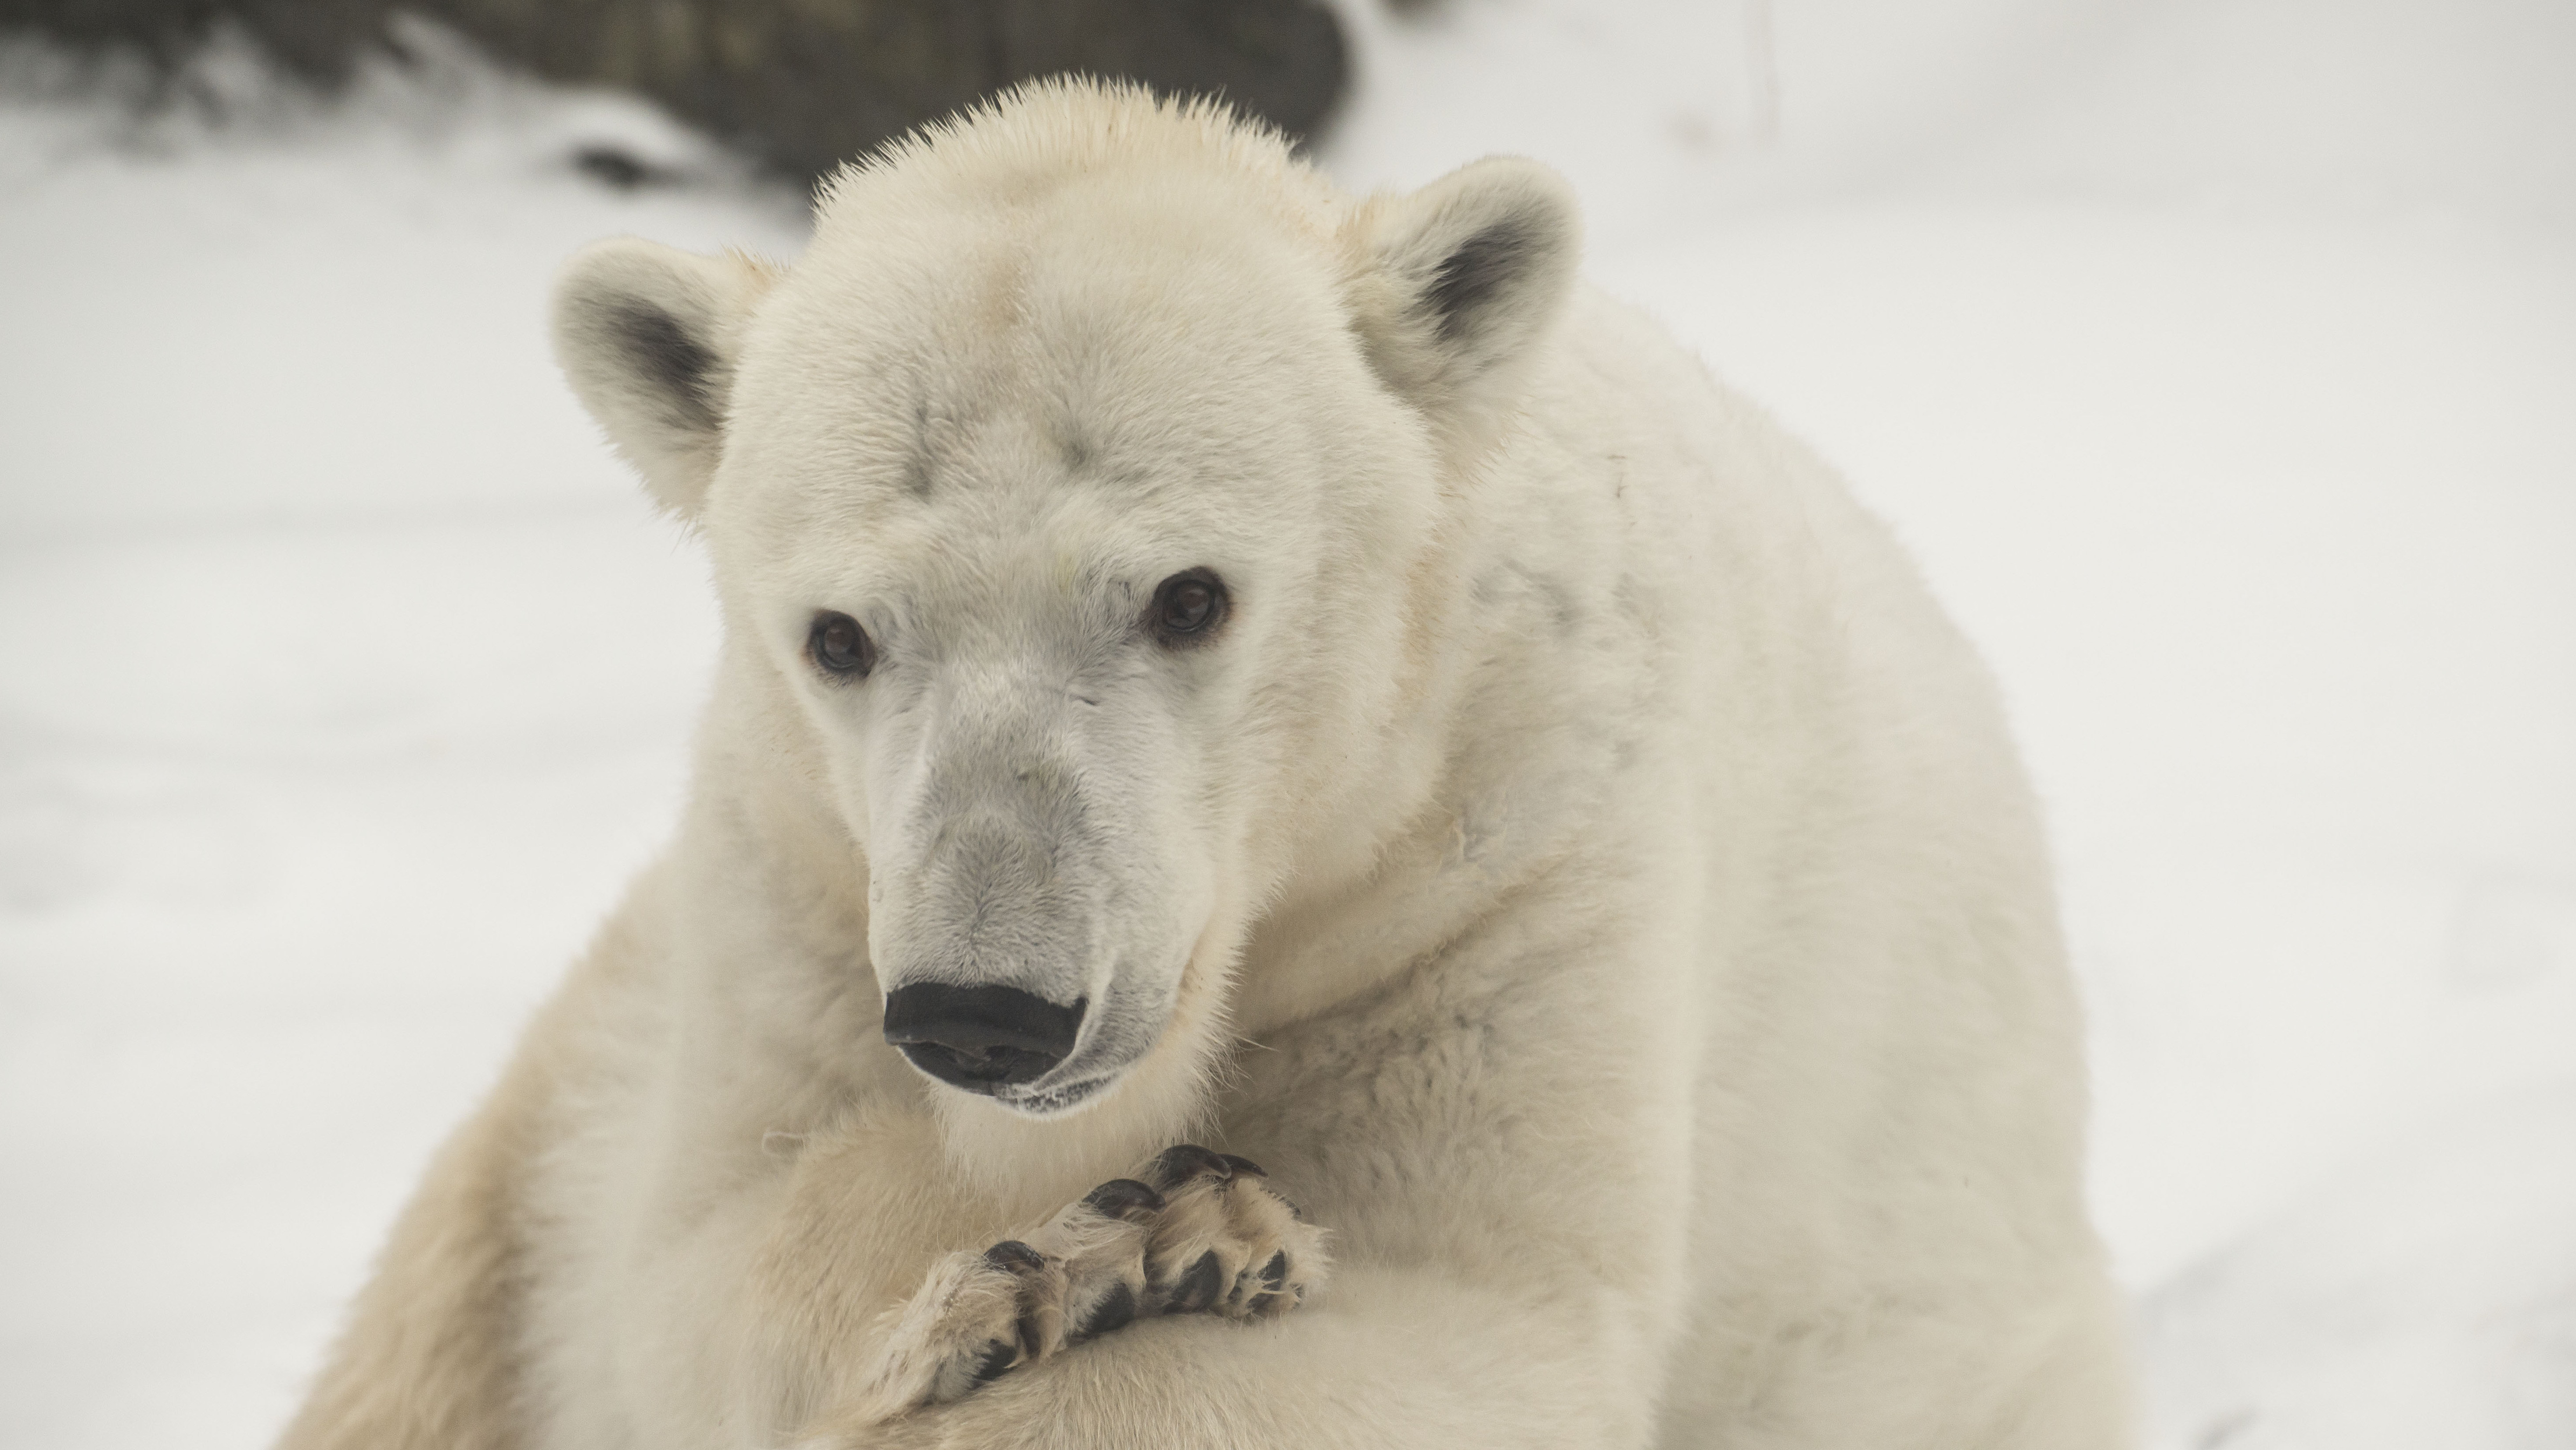 polar bears suffering And though other bear species, such as grizzlies, store food for later, sticking leftovers into what amounts to a refrigerator is unusual behavior for polar bears.